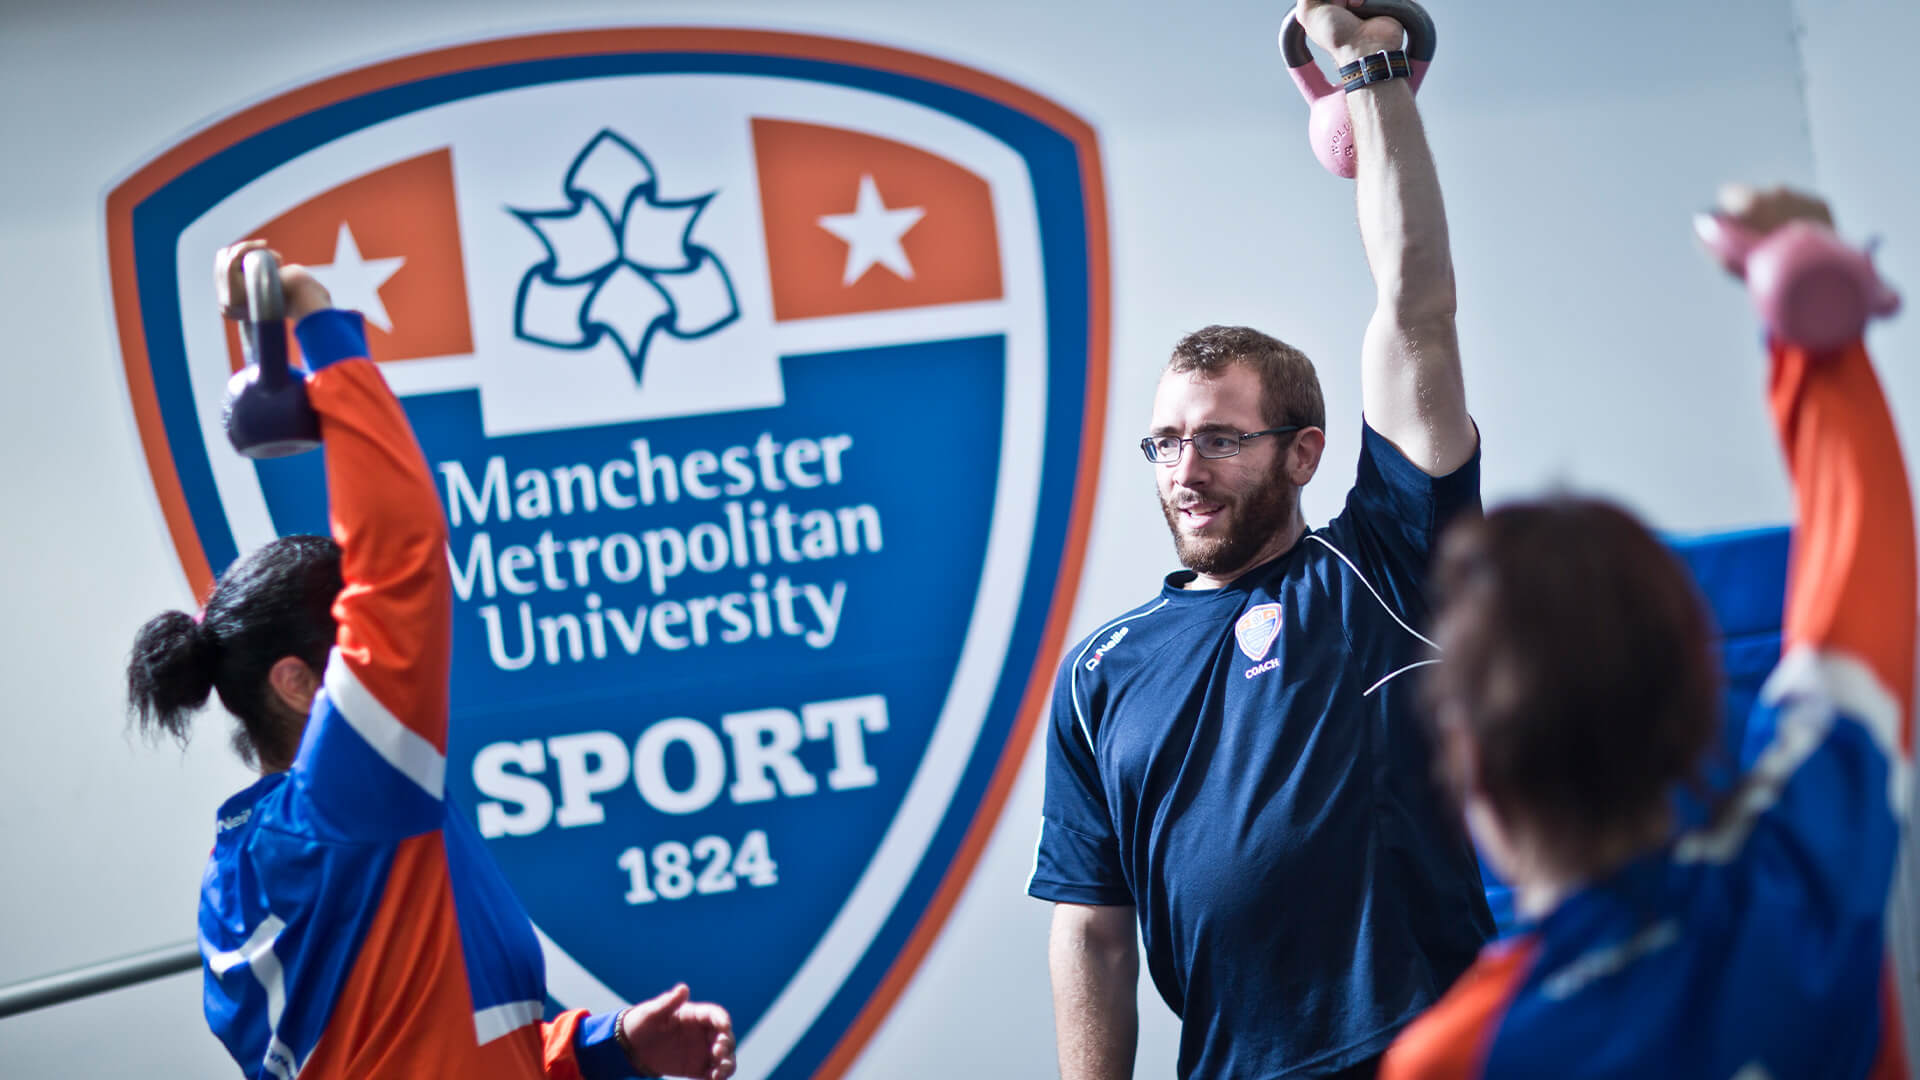 Students taking part in a free drop in sports session at Manchester Metropolitan University